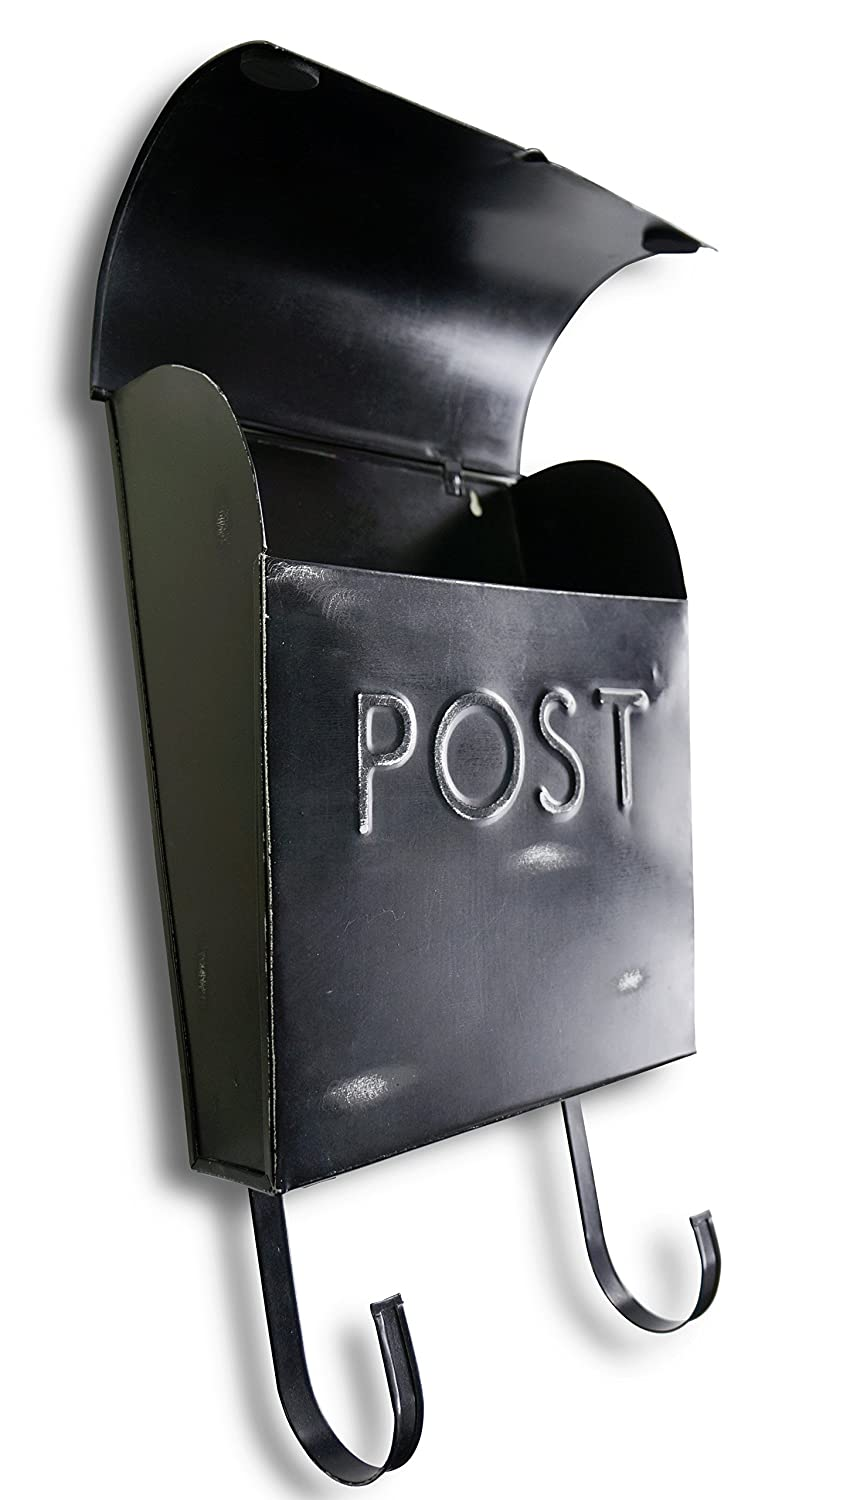 12 x 11.2 x 4.5 inch North American Country Home Wall Mounted Post Box Black NACH TH-10016 Euro Rustic Mailbox